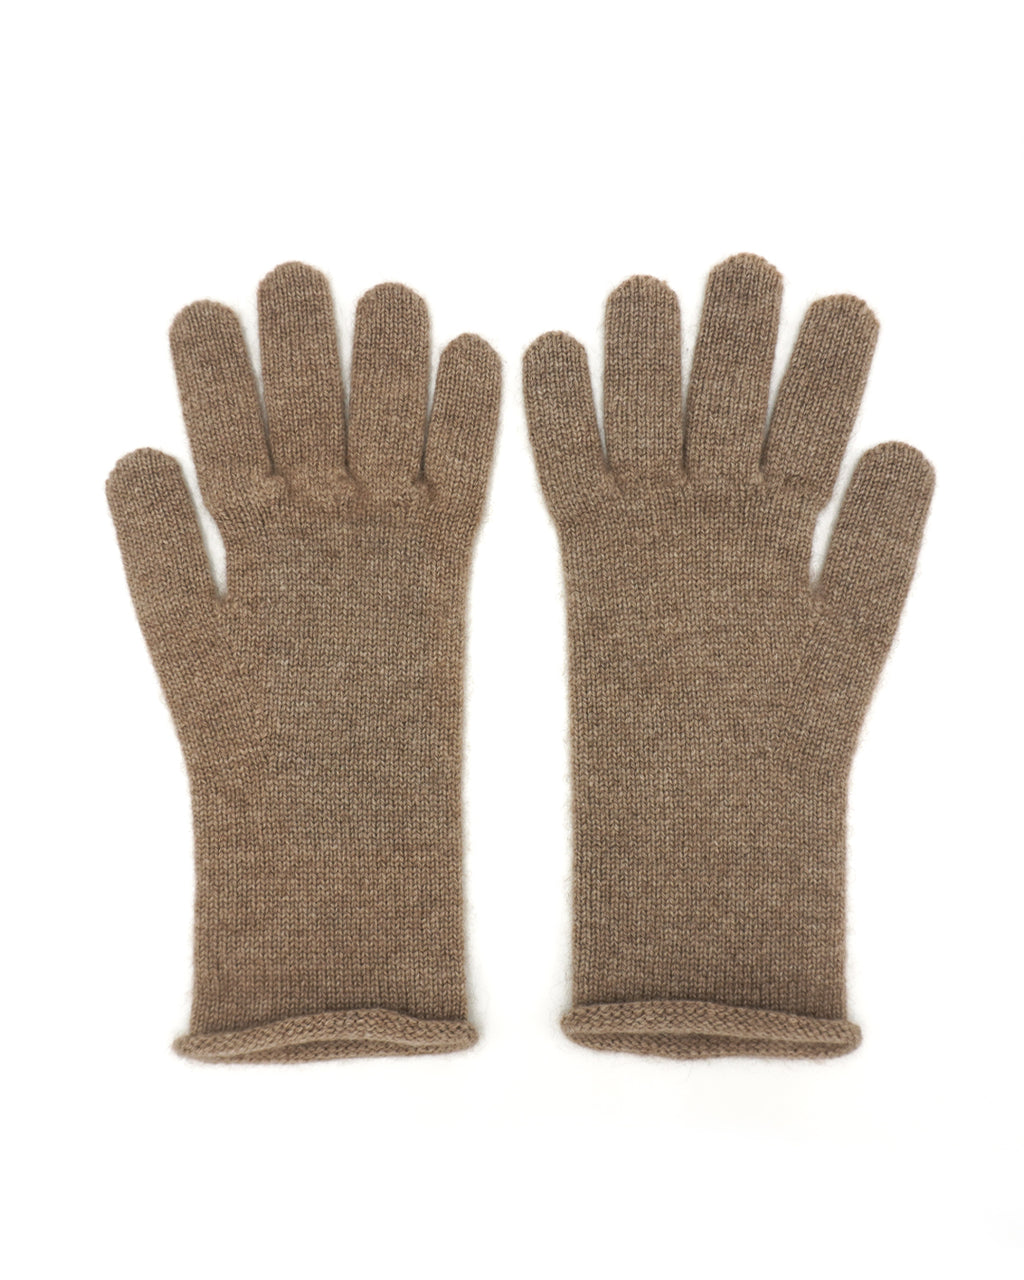 100% Cashmere Knitted Gloves